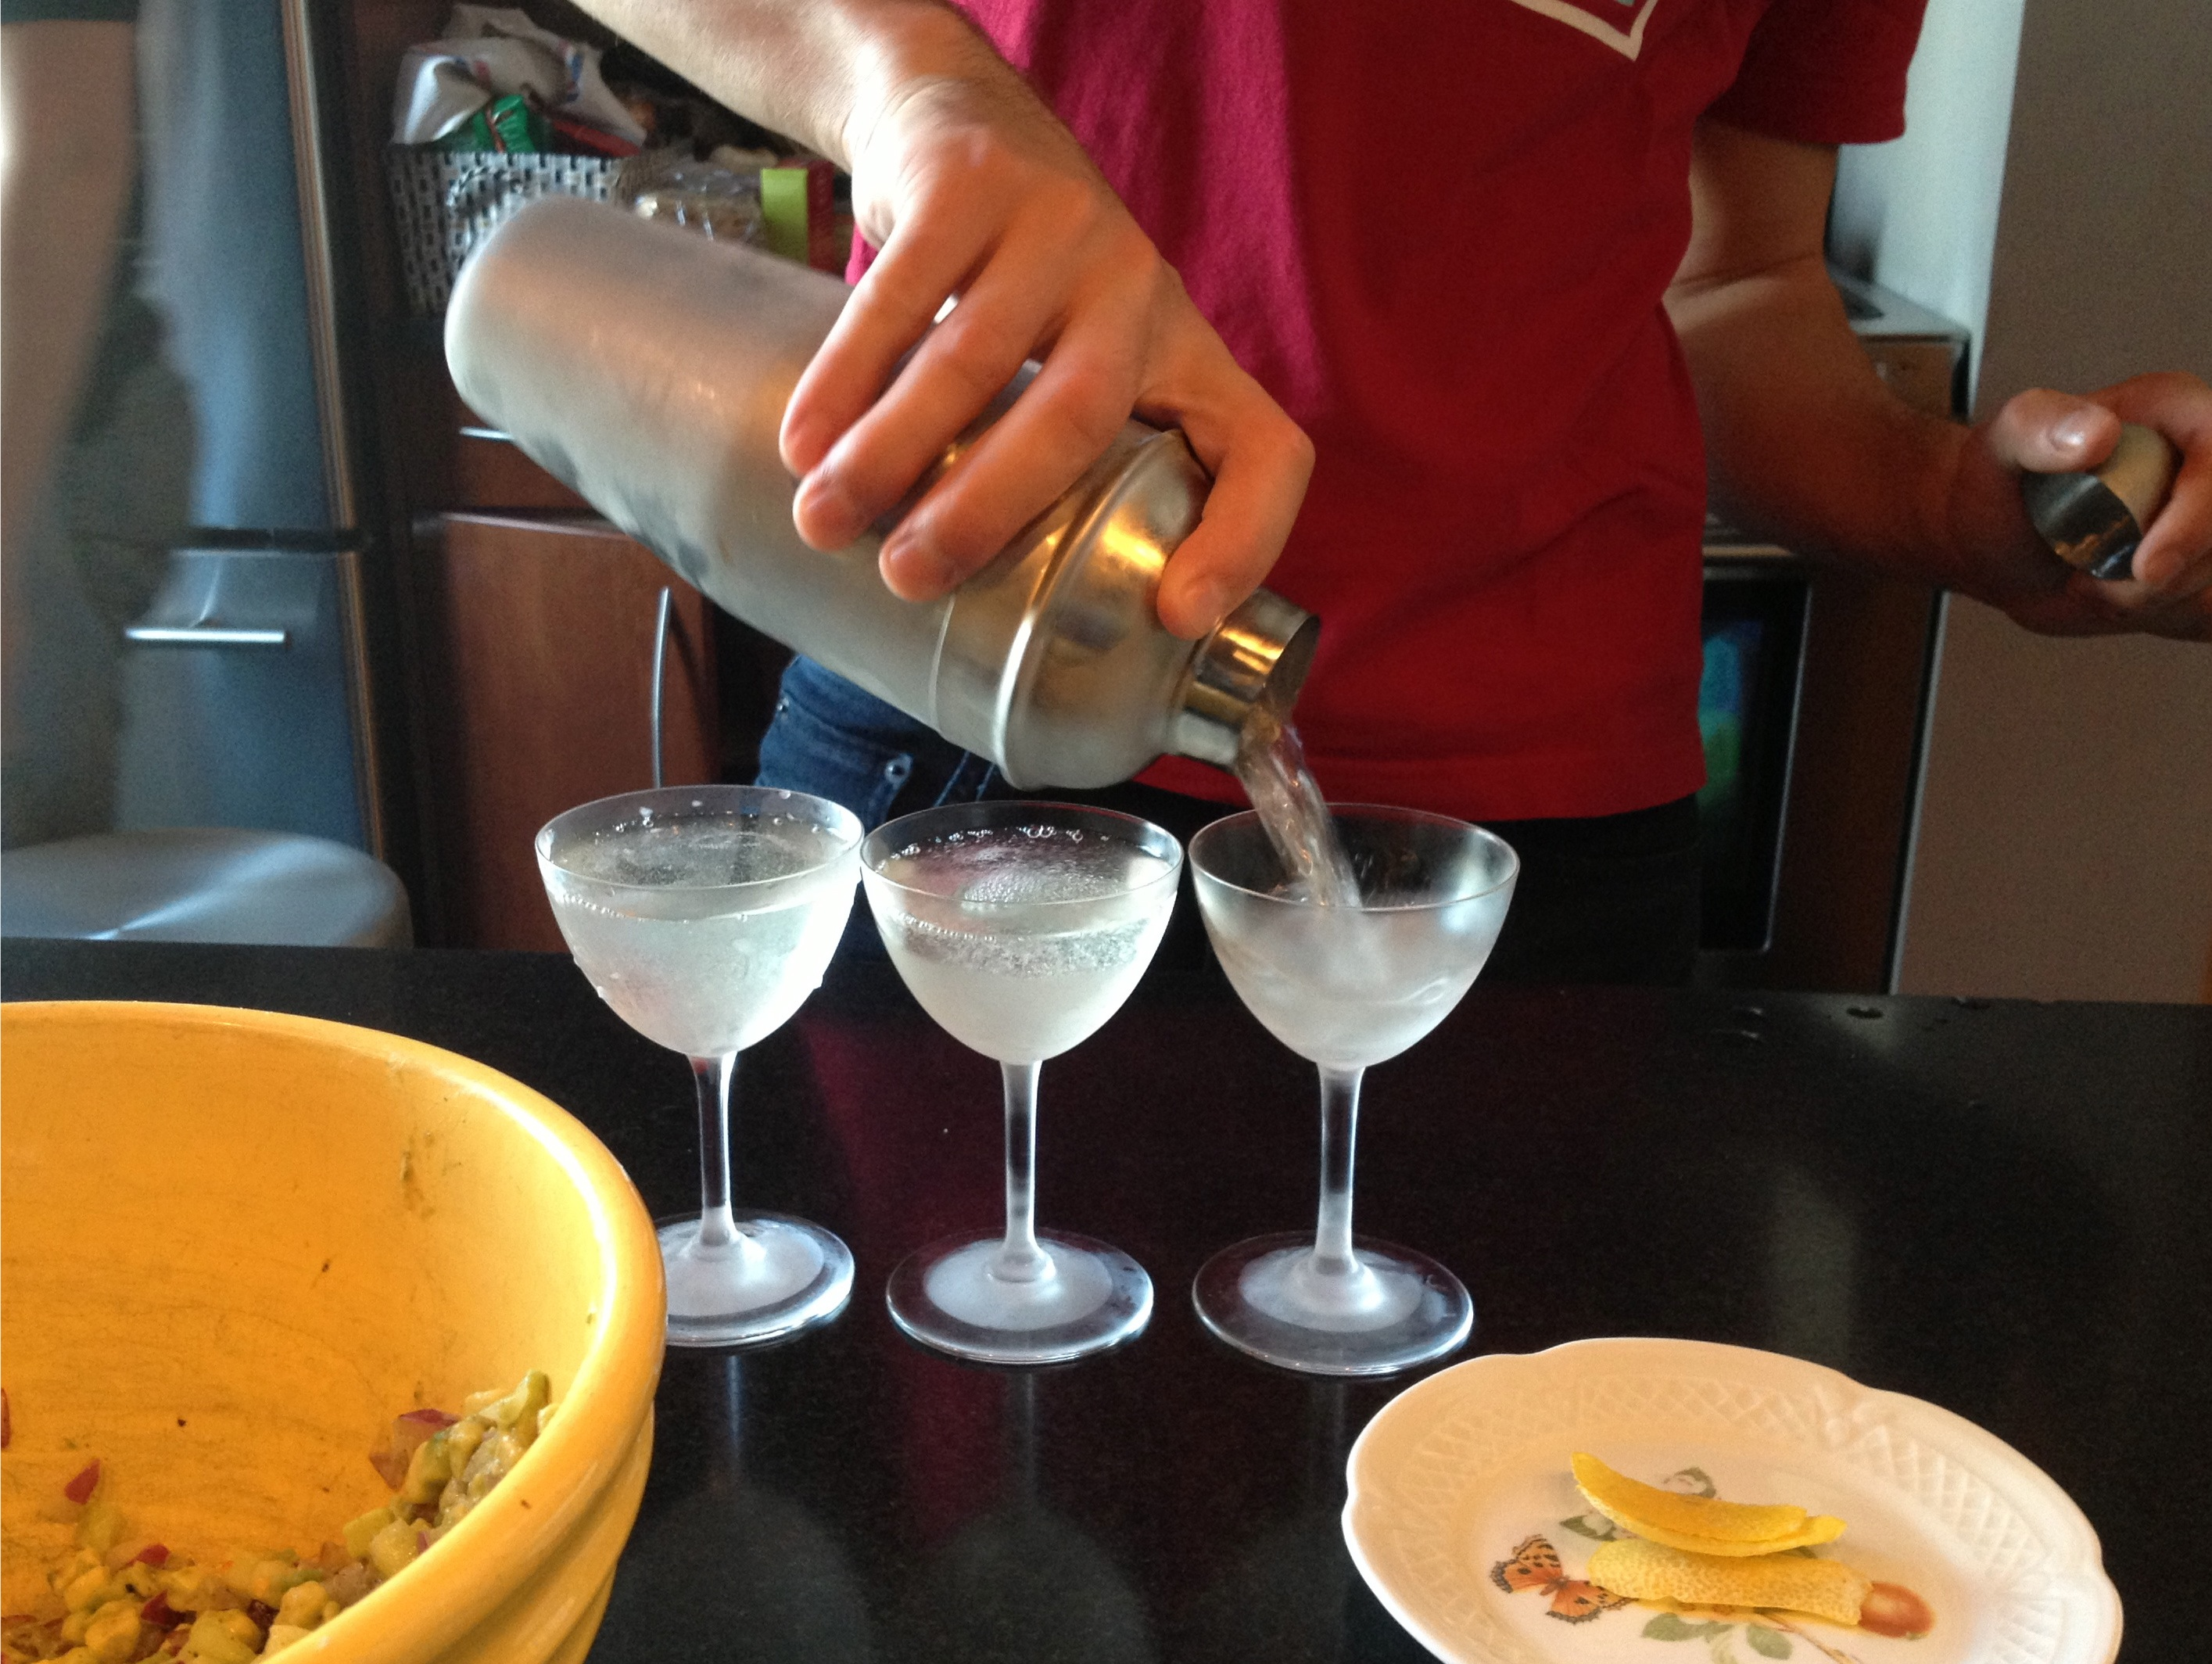 Vespers being poured into chilled Baccarat martini glasses for a Mother's Day dinner.